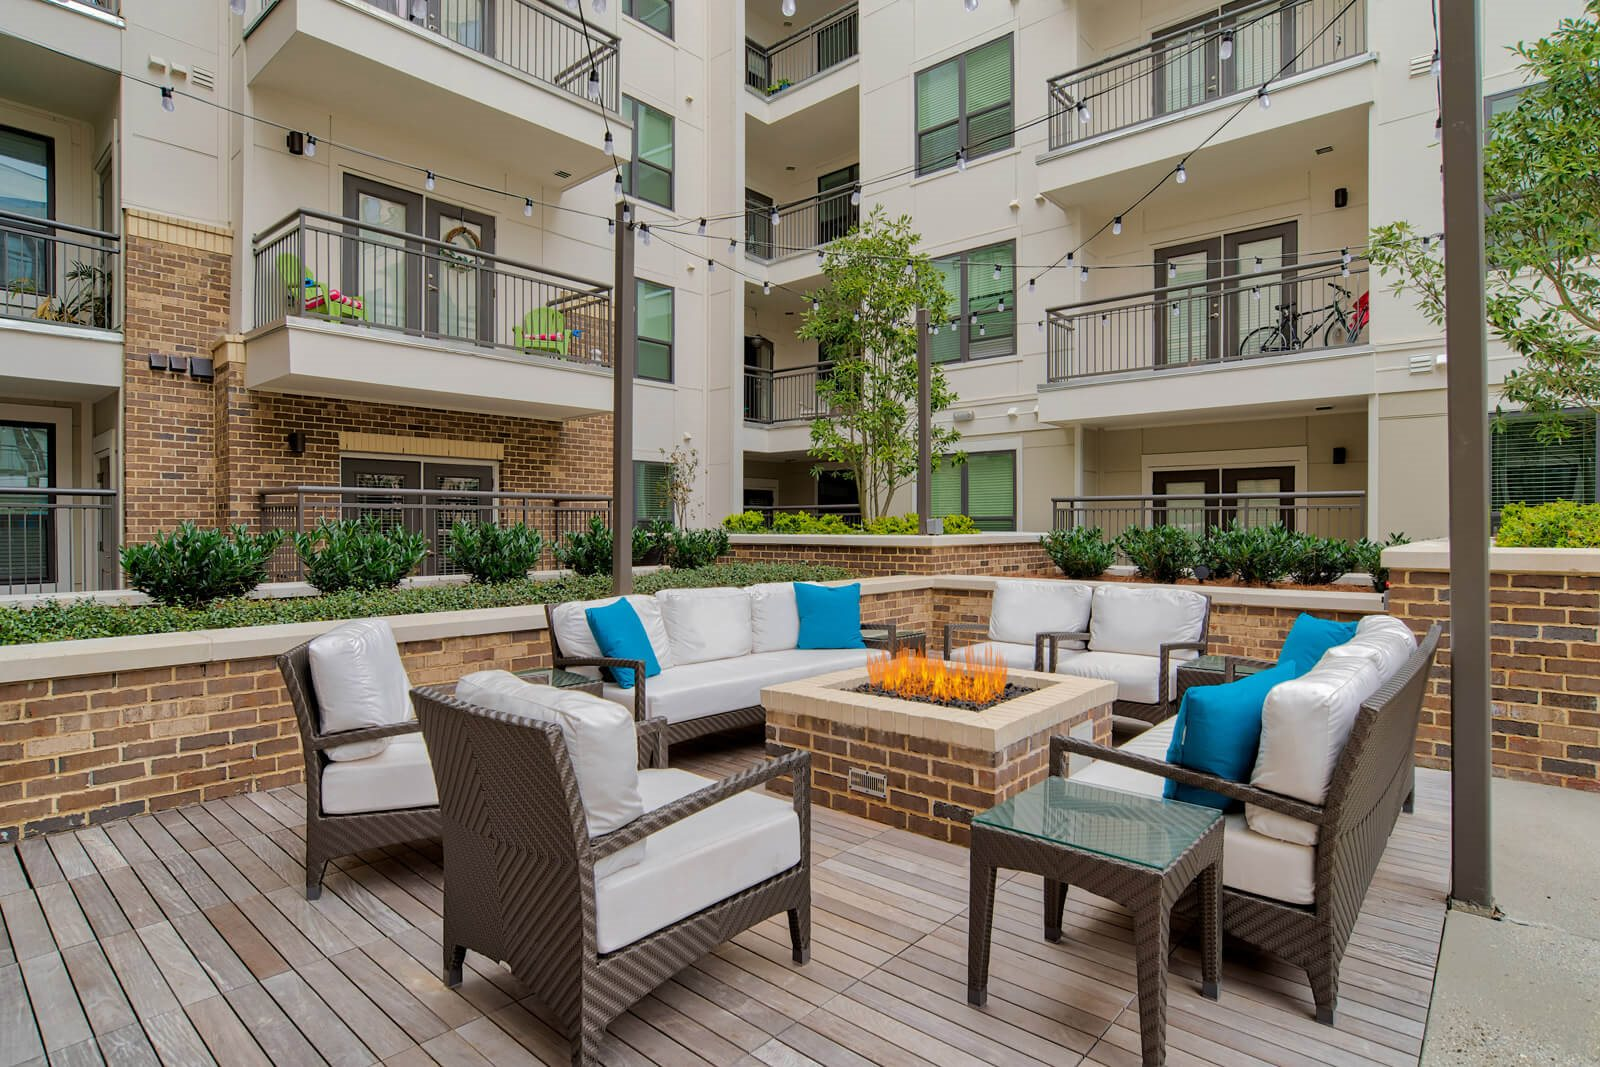 Courtyard Fire Pits with Surrounding Lounge Space at Windsor Old Fourth Ward, 608 Ralph McGill Blvd NE, Atlanta